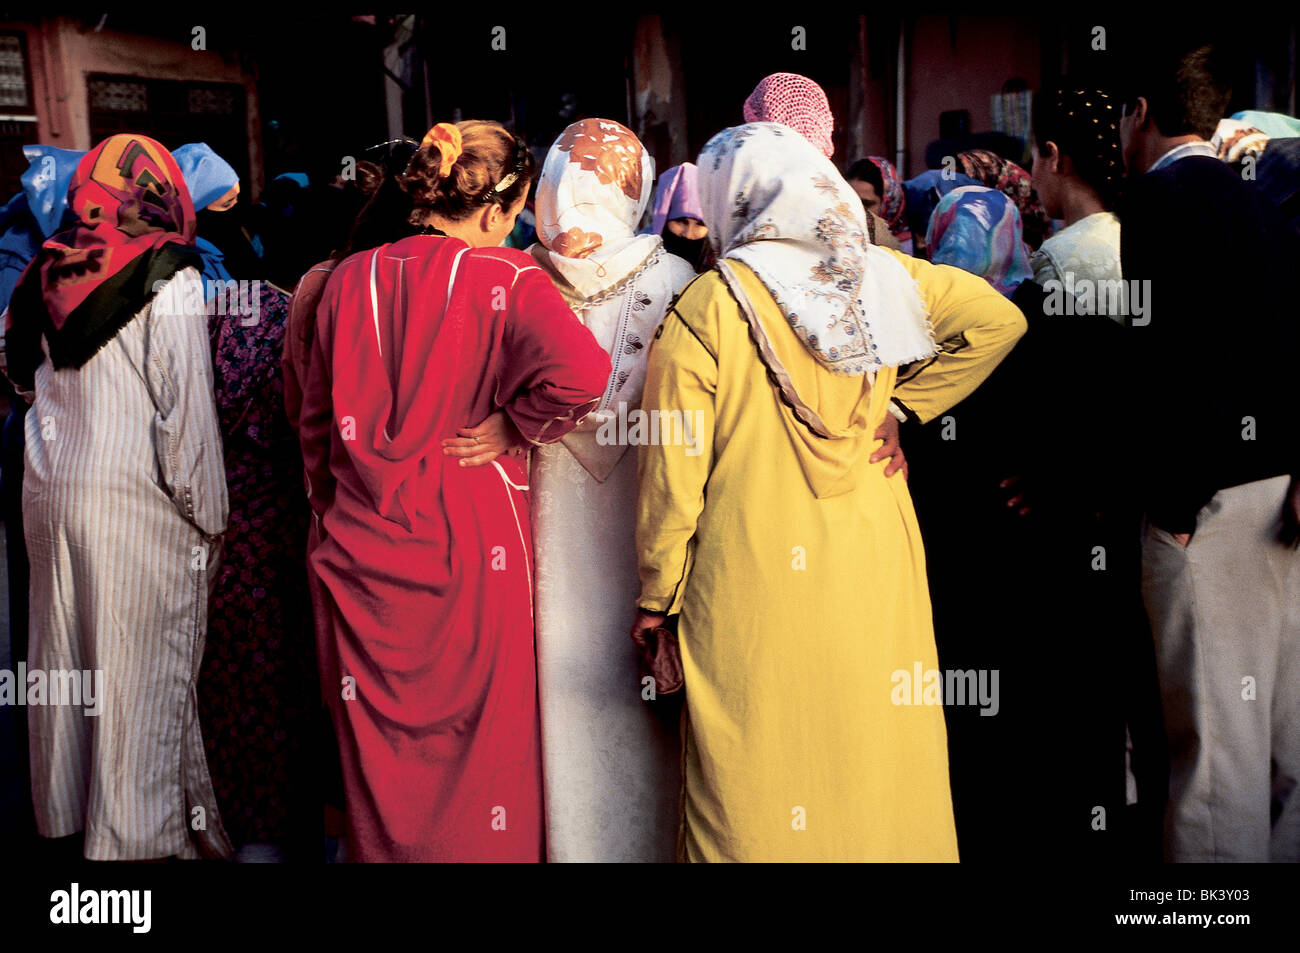 Women wearing brightly colored djellabas and headscarves, Marrakesh, Morocco - Stock Image